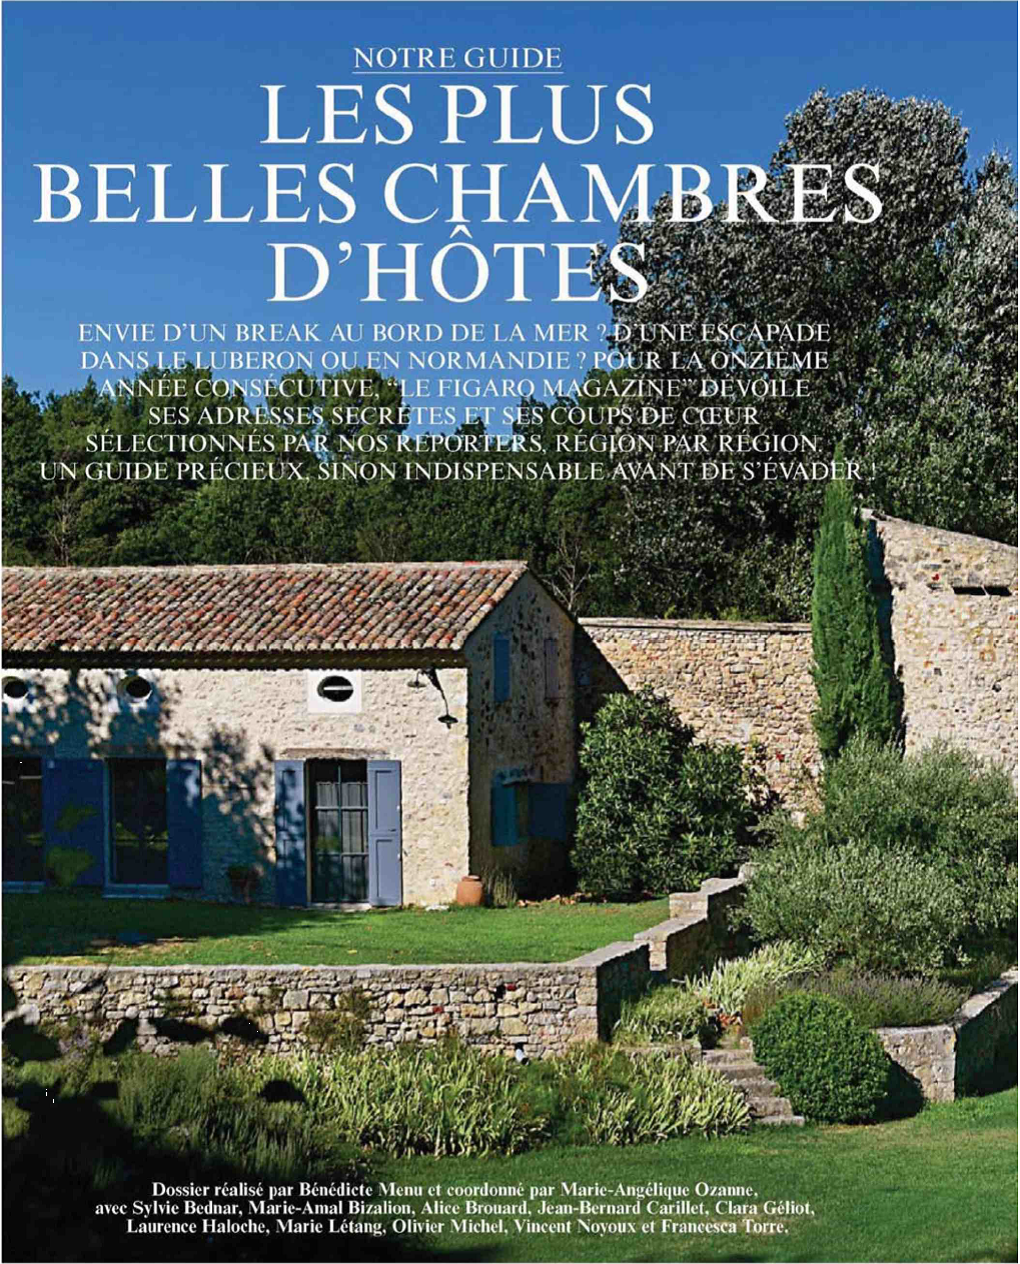 THE SPIRIT OF the 8 - Bed and Breakfast in Rochefort sur Mer in Charente Maritime Guide 2019 the most beautiful bed and breakfast - Le Figaro Magazine newspaper